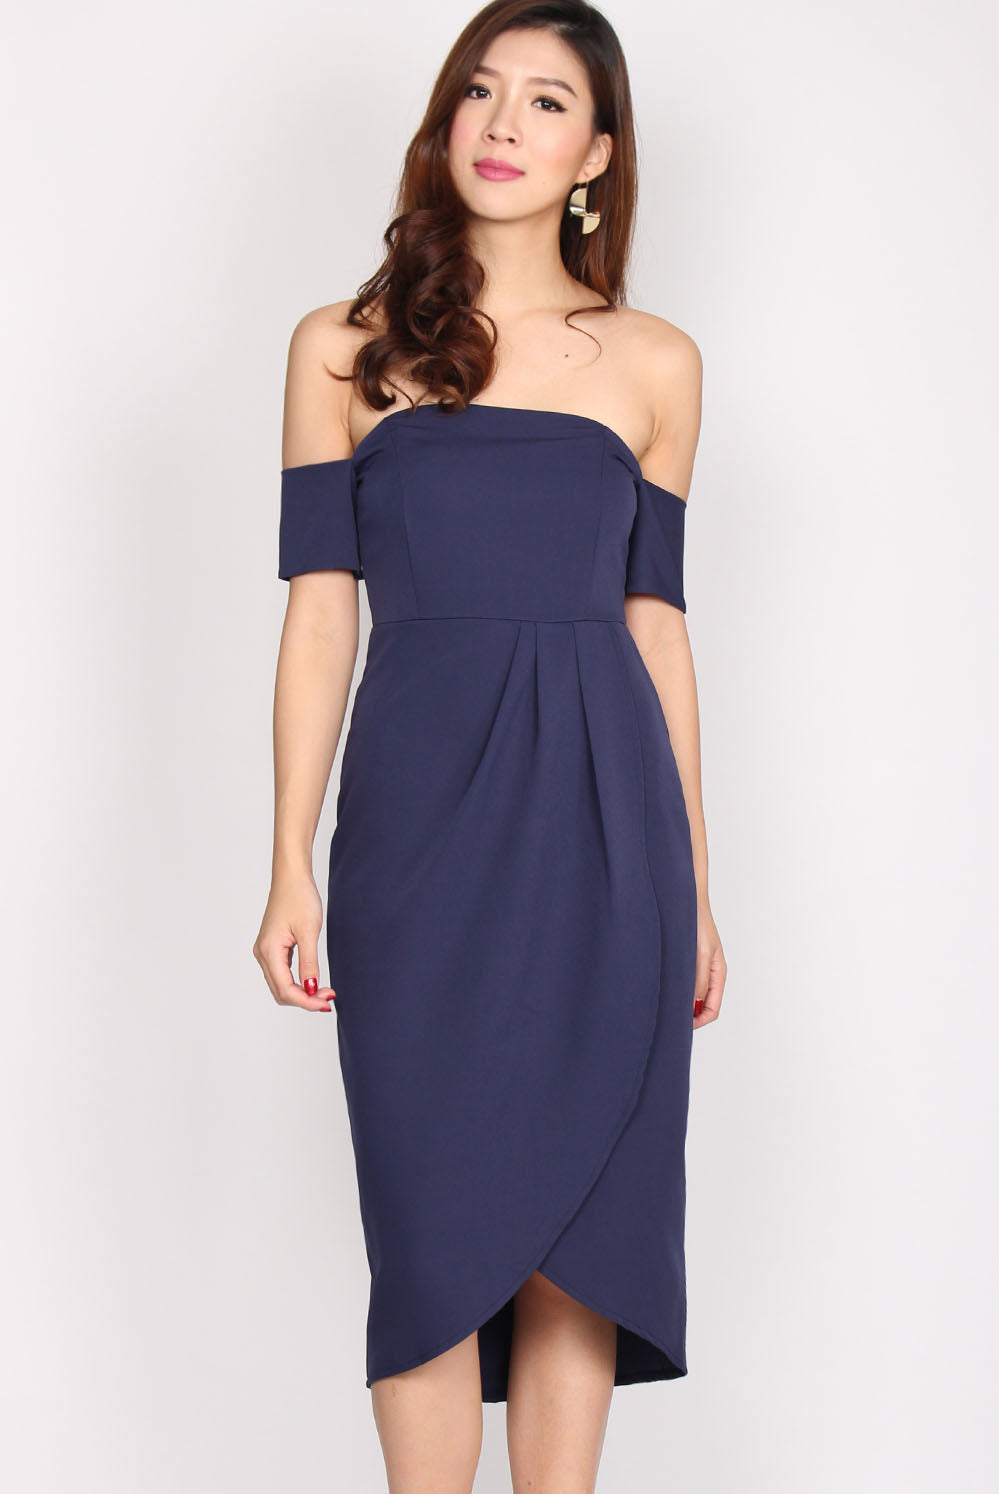 Aramenor Off Shoulder Tulip Dress In Navy Blue